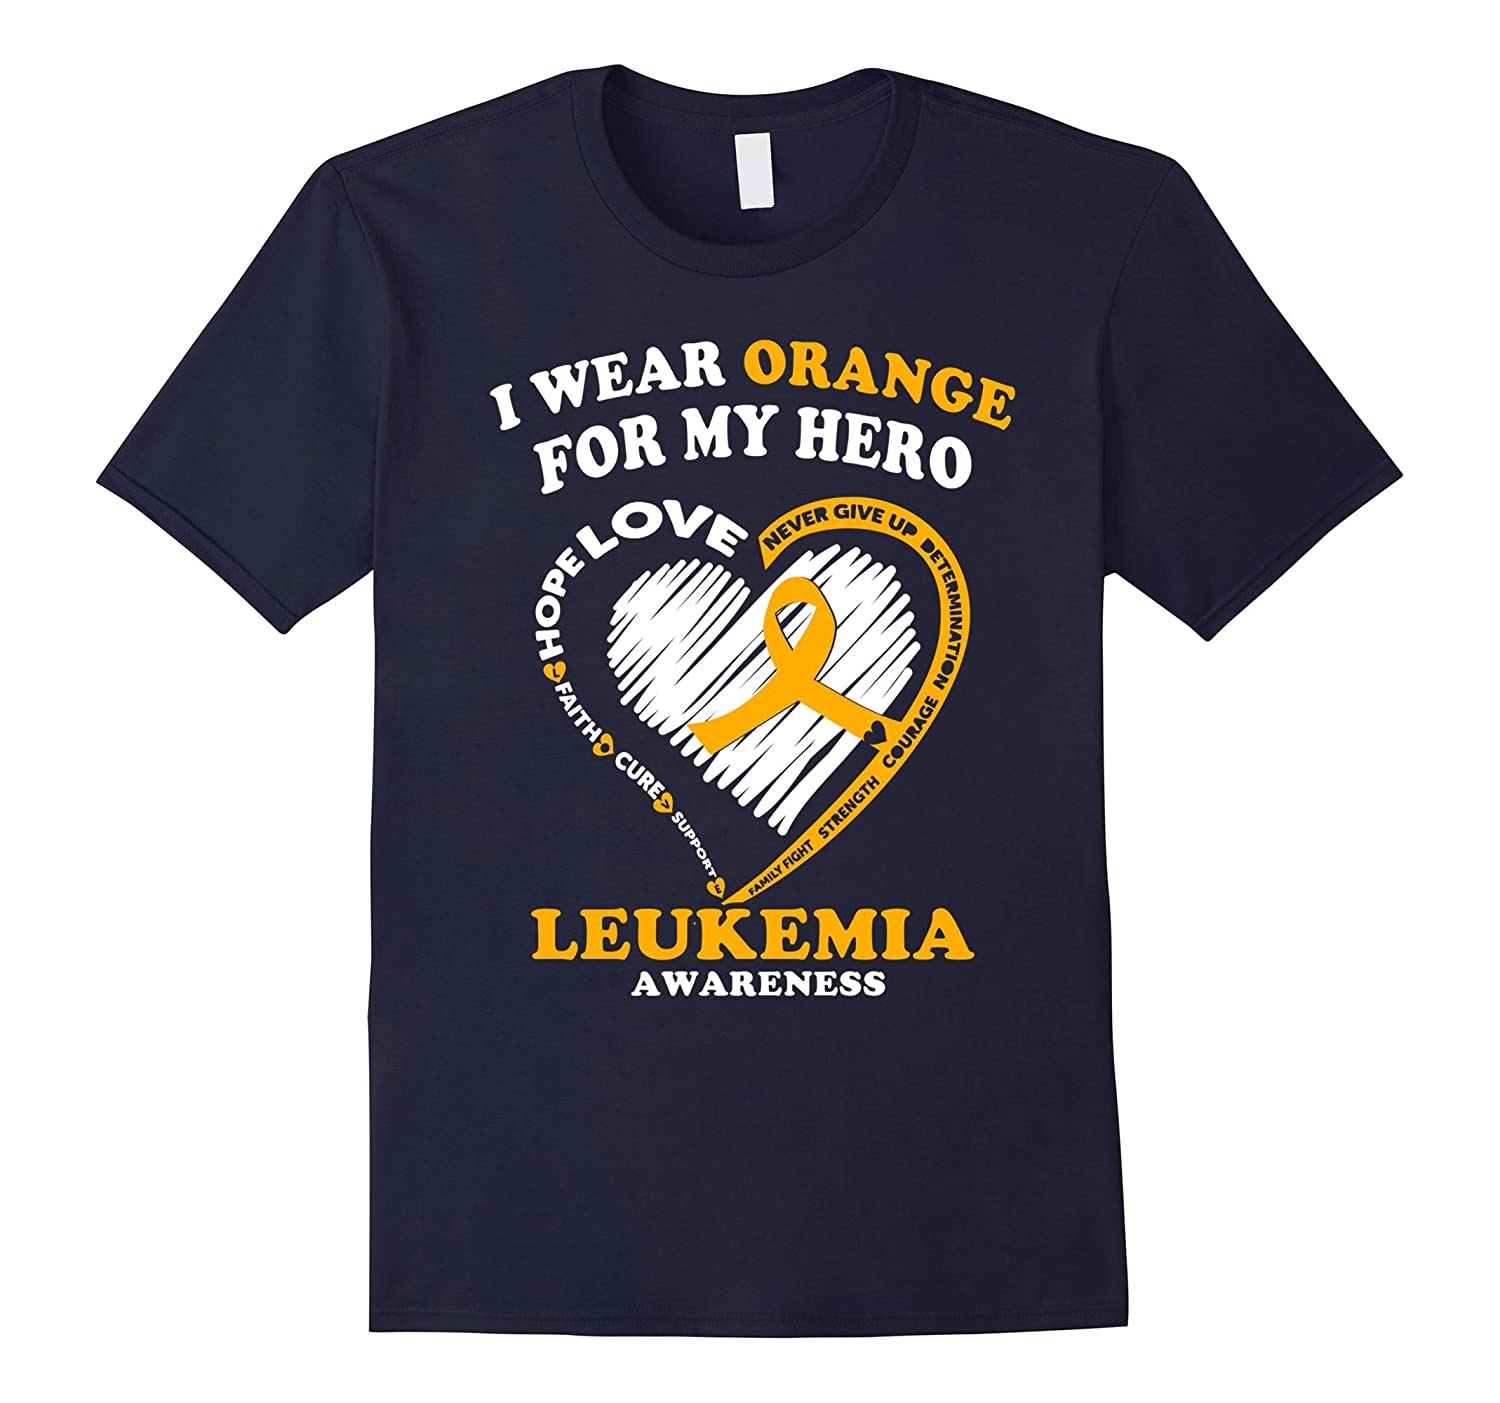 Leukemia Awareness T Shirt - I Wear Orange for My Hero-CL